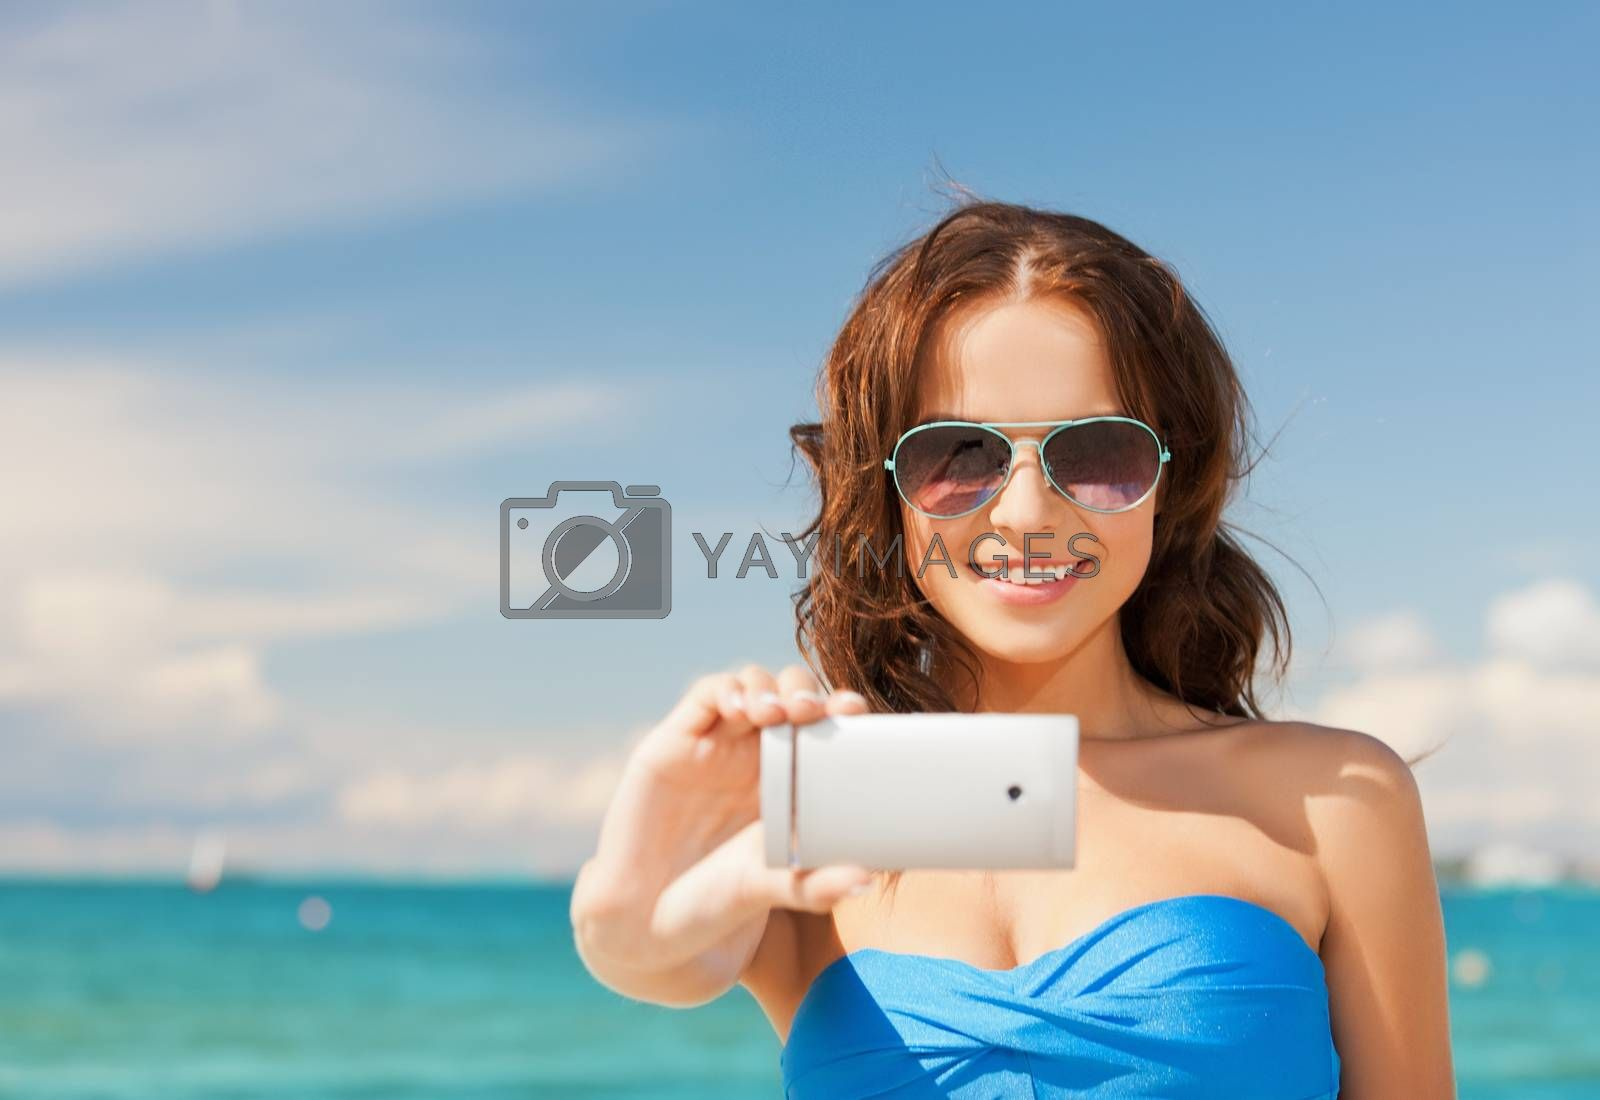 woman in bikini with phone by dolgachov